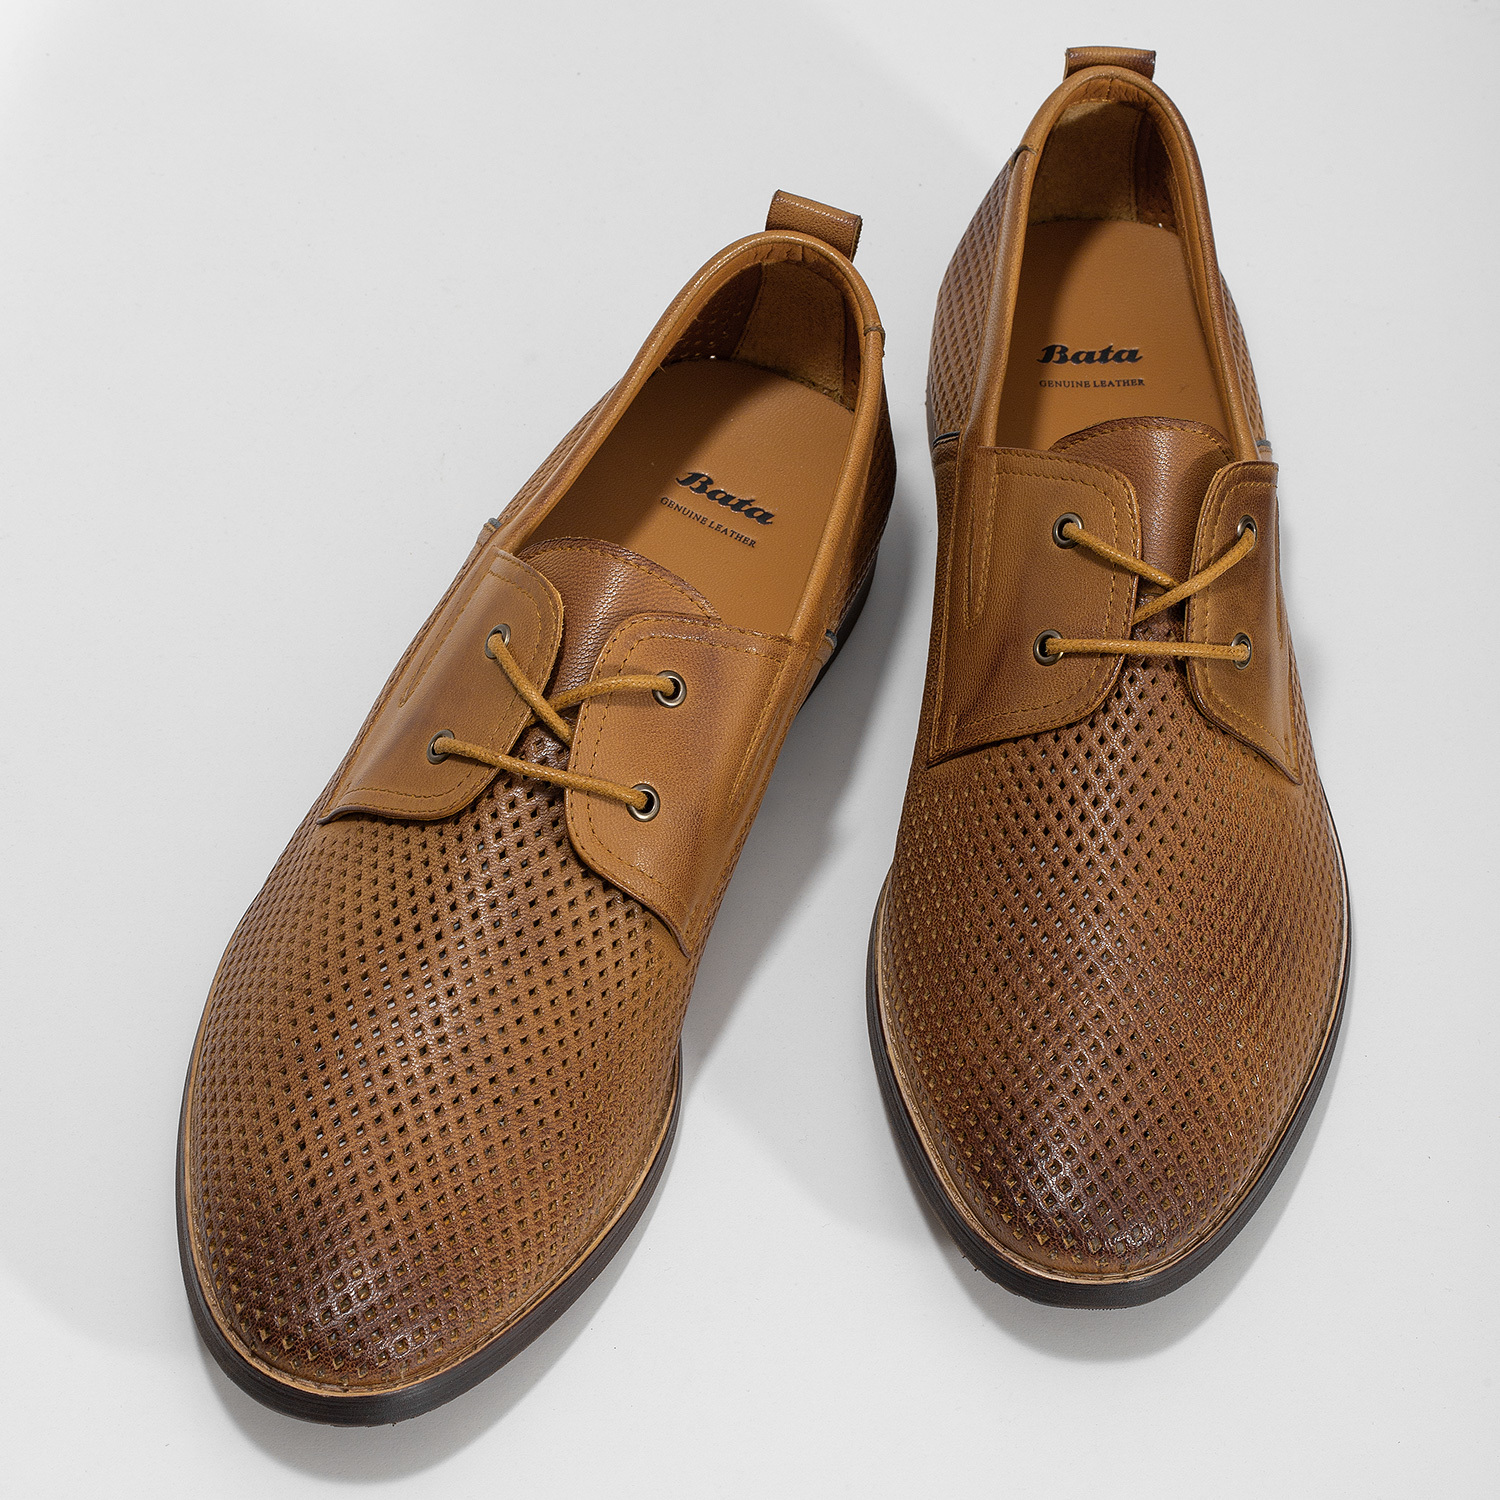 Bata Casual leather shoes with